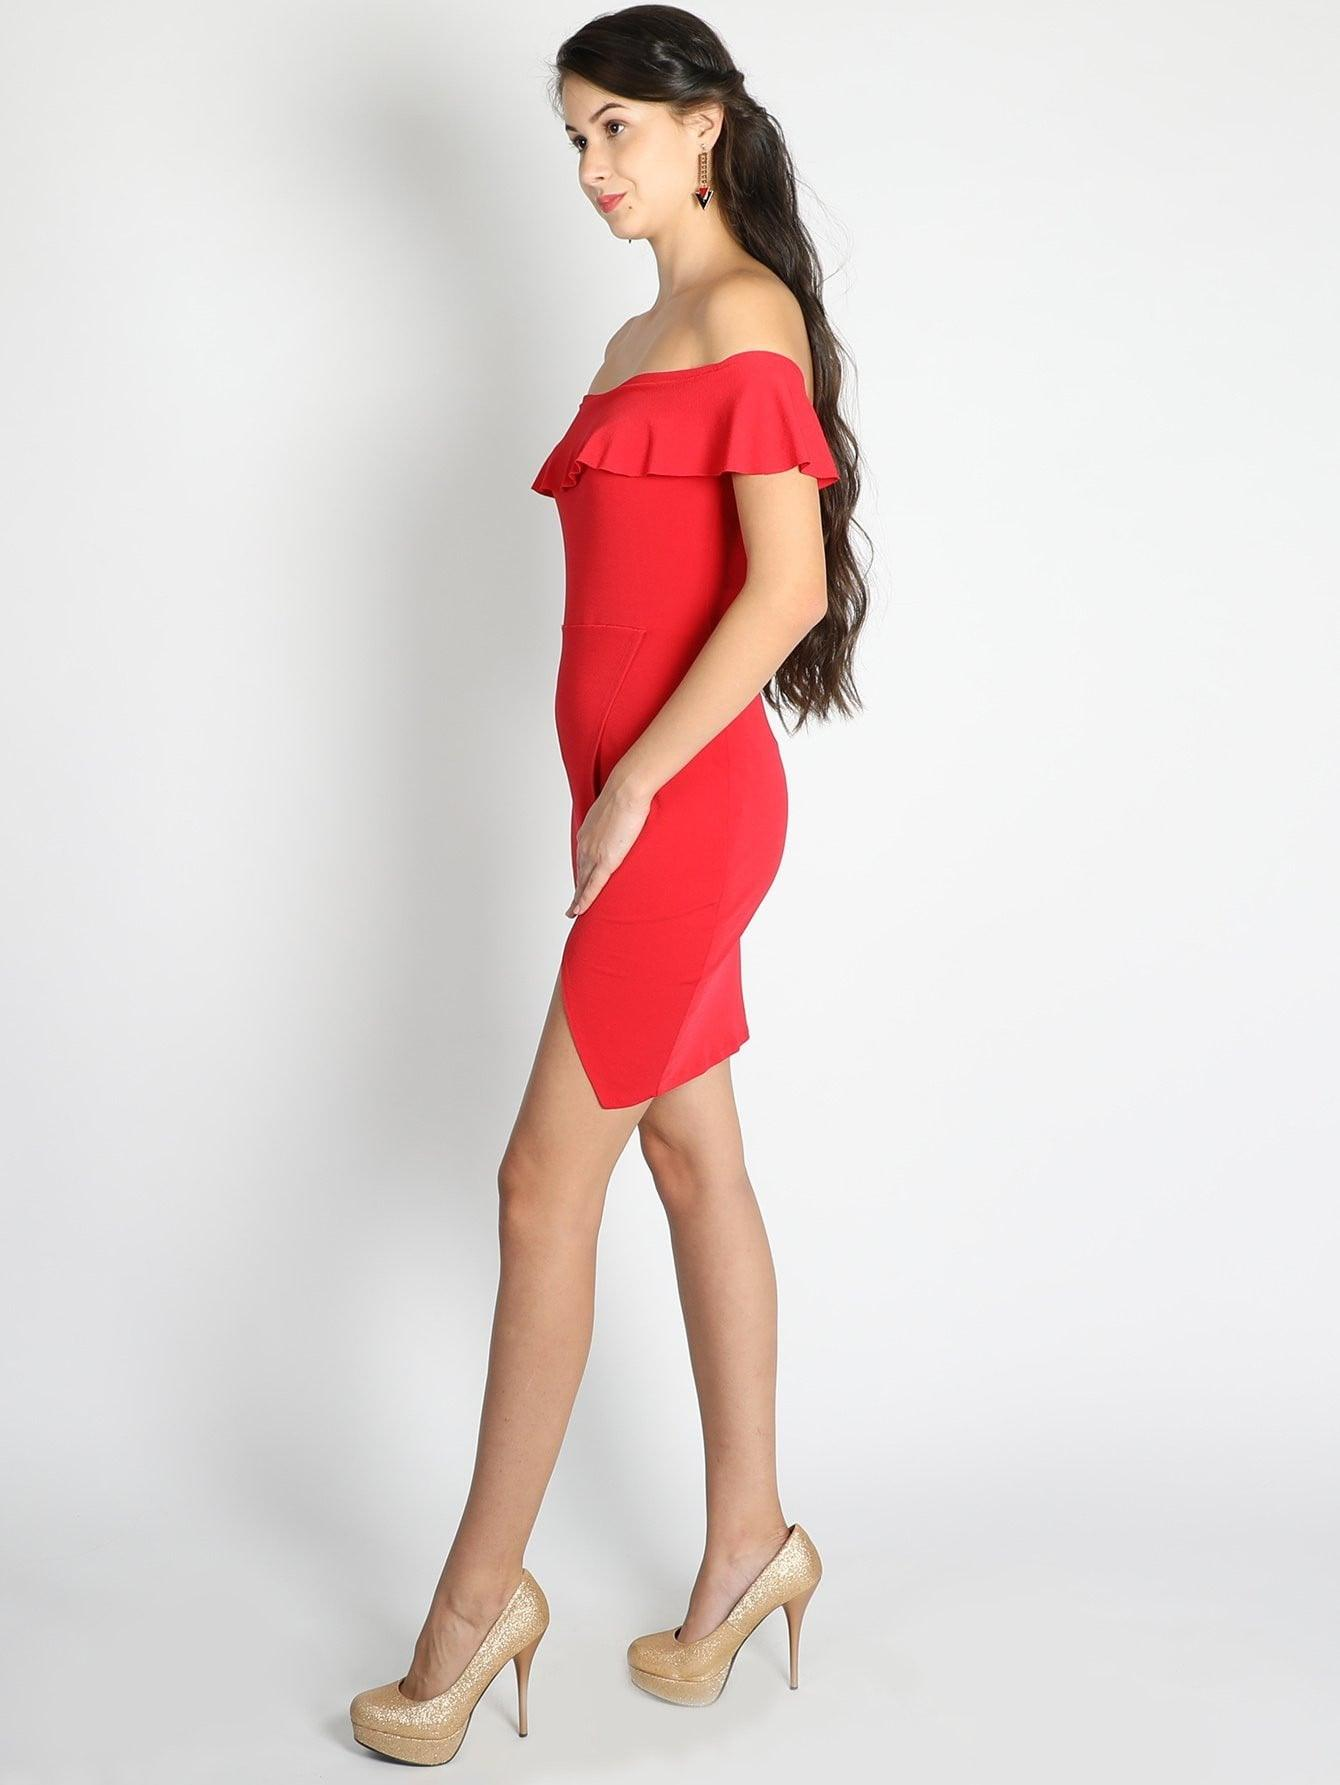 Red Frilled Off Shoulder Dress - Dresses - Zooomberg - Zoomberg